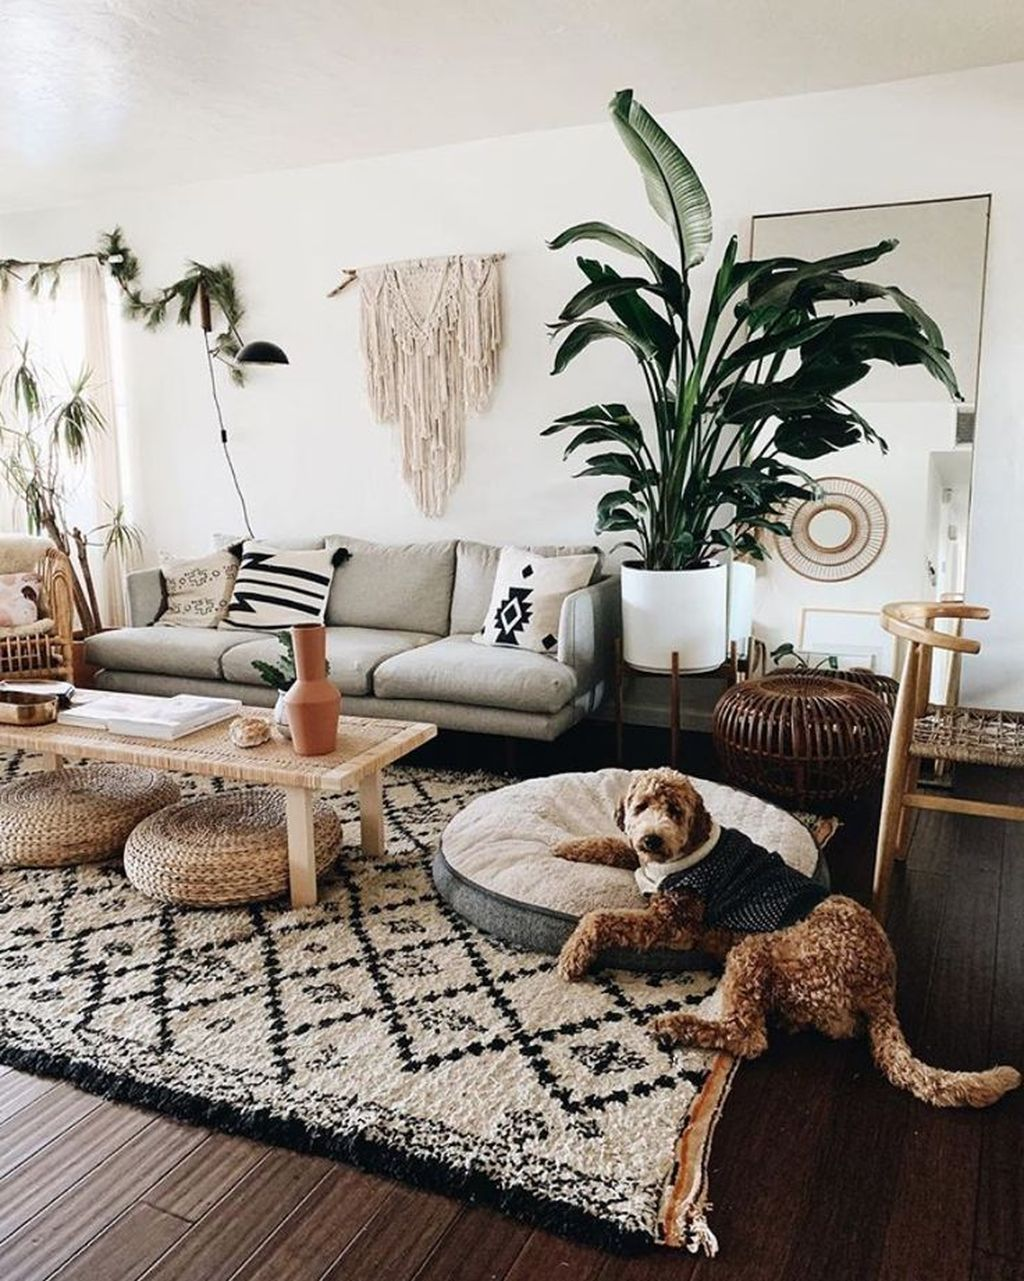 30 Stunning Living Room Ideas For Home Inspiration Bohemian Style Living Room Modern Bohemian Living Room Modern Boho Living Room Small boho living room